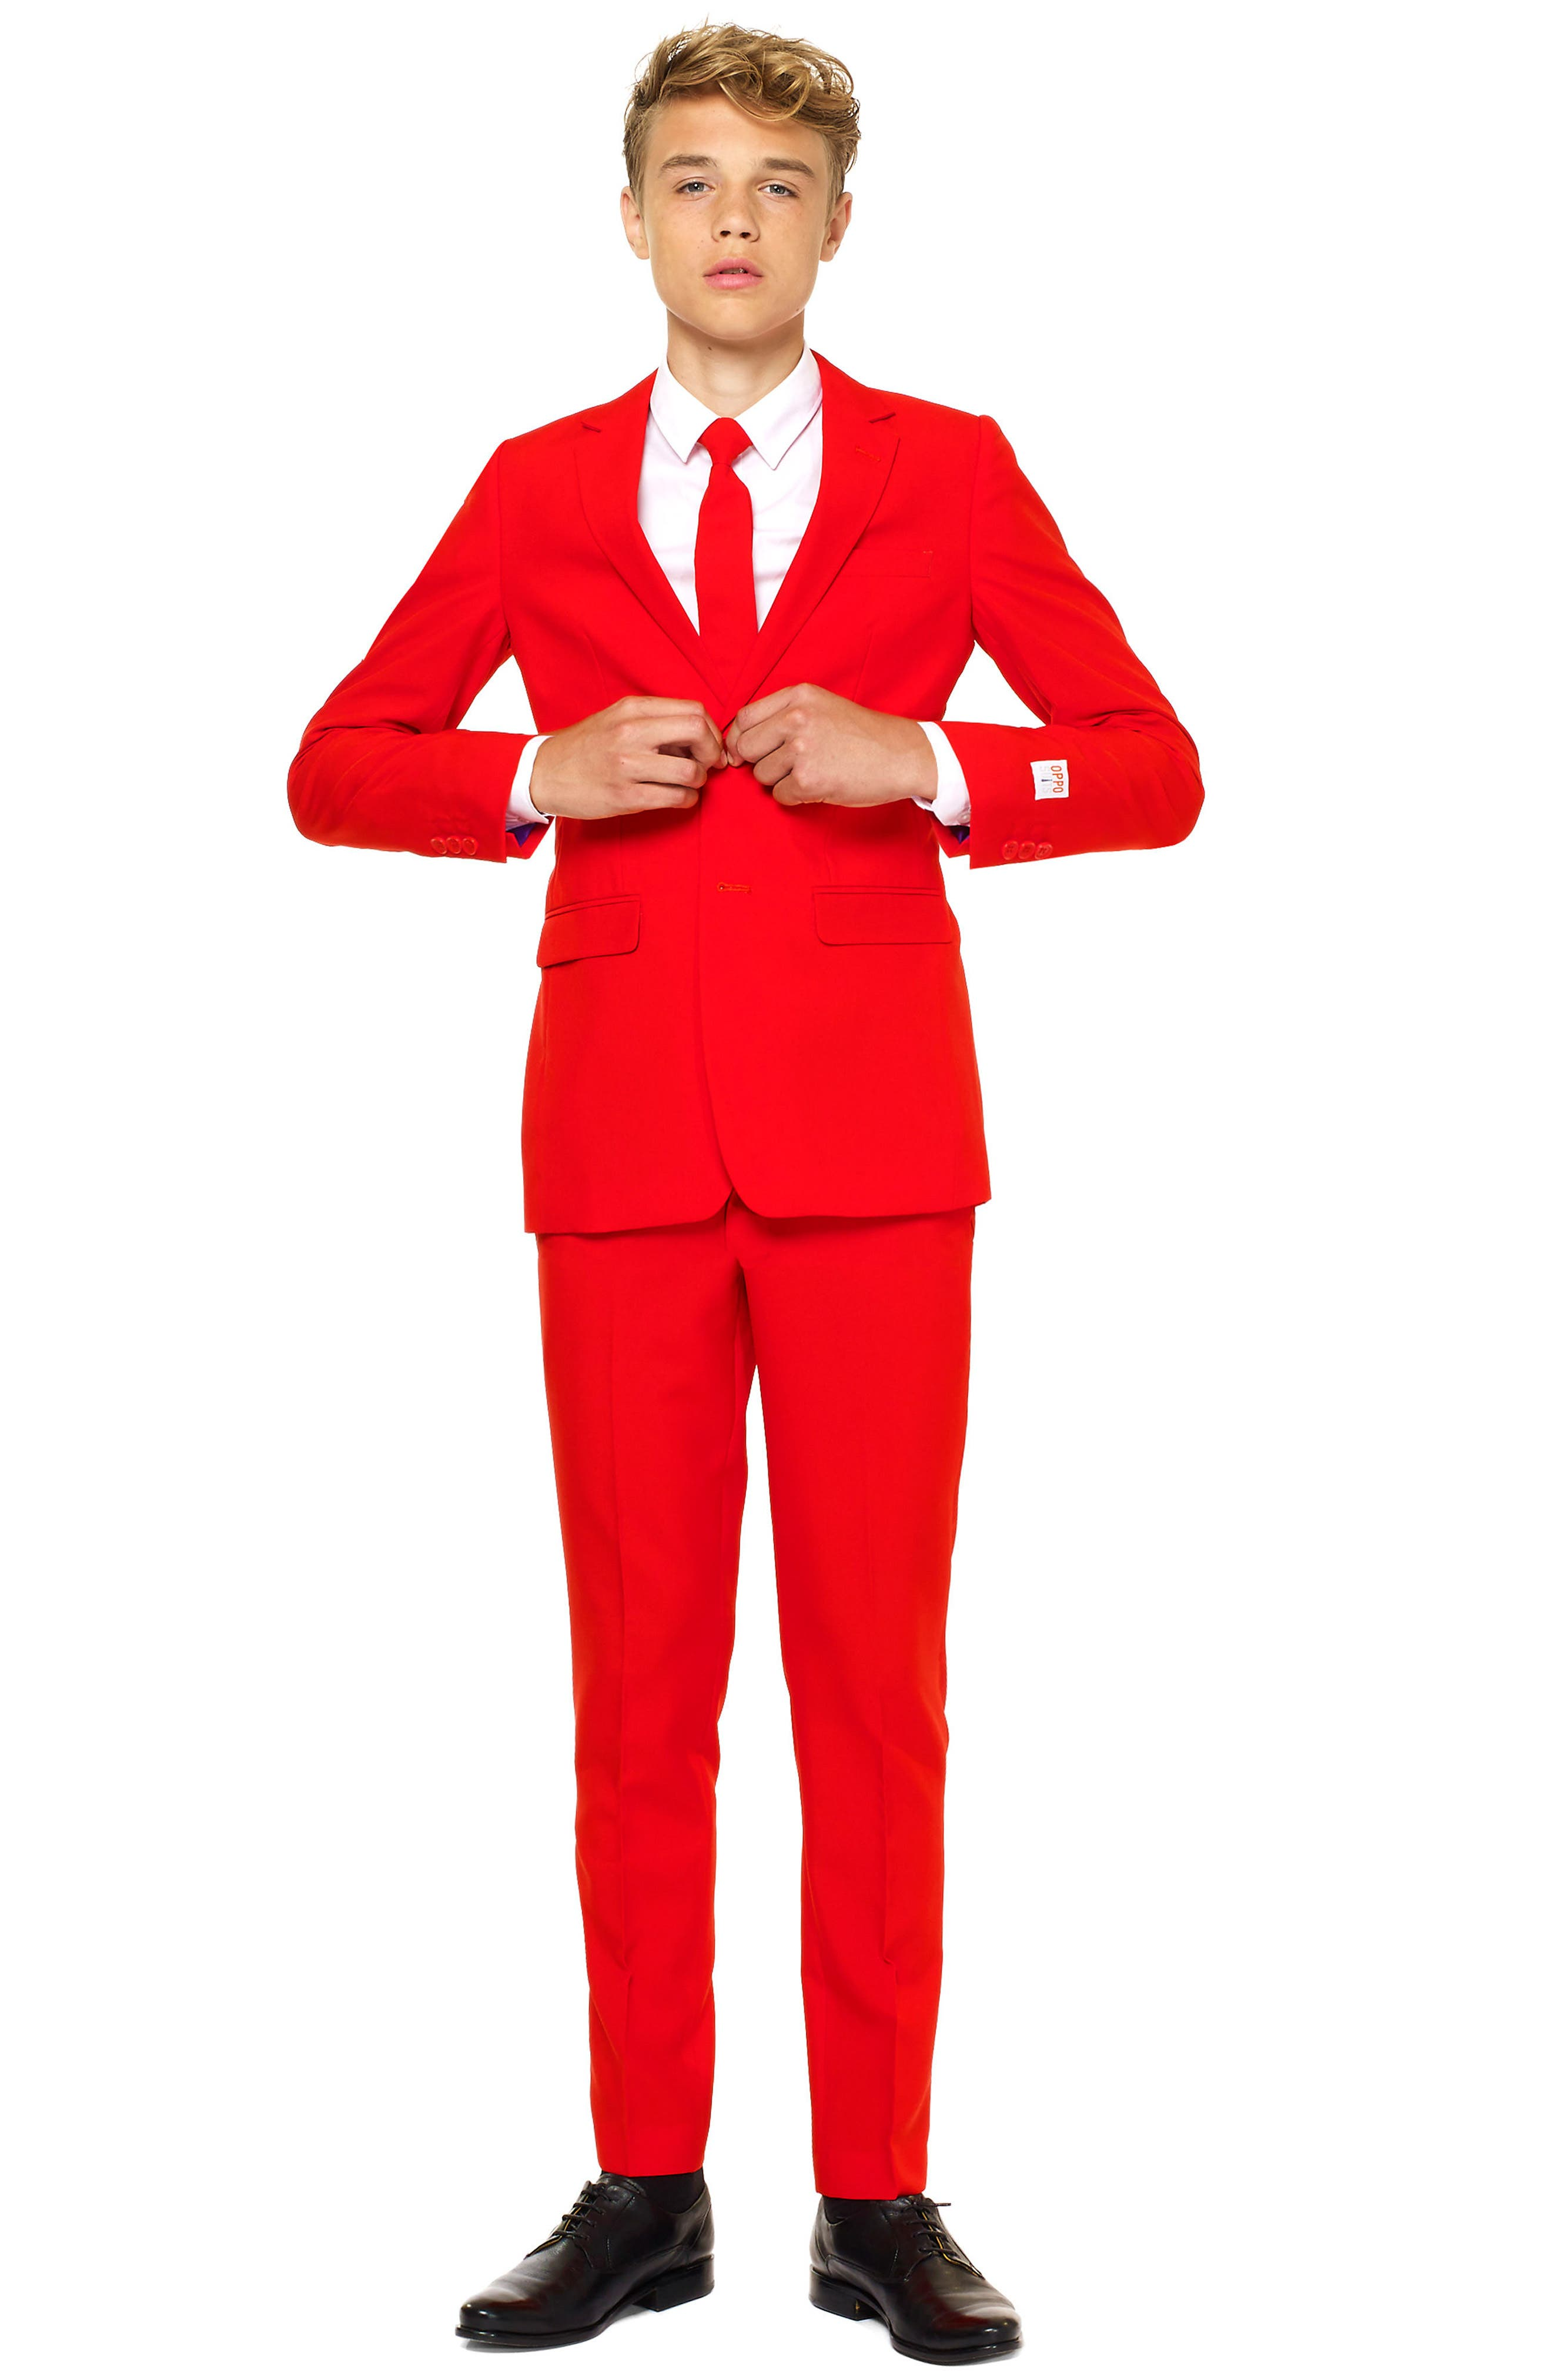 Oppo Red Devil Two-Piece Suit with Tie (Big Boys)